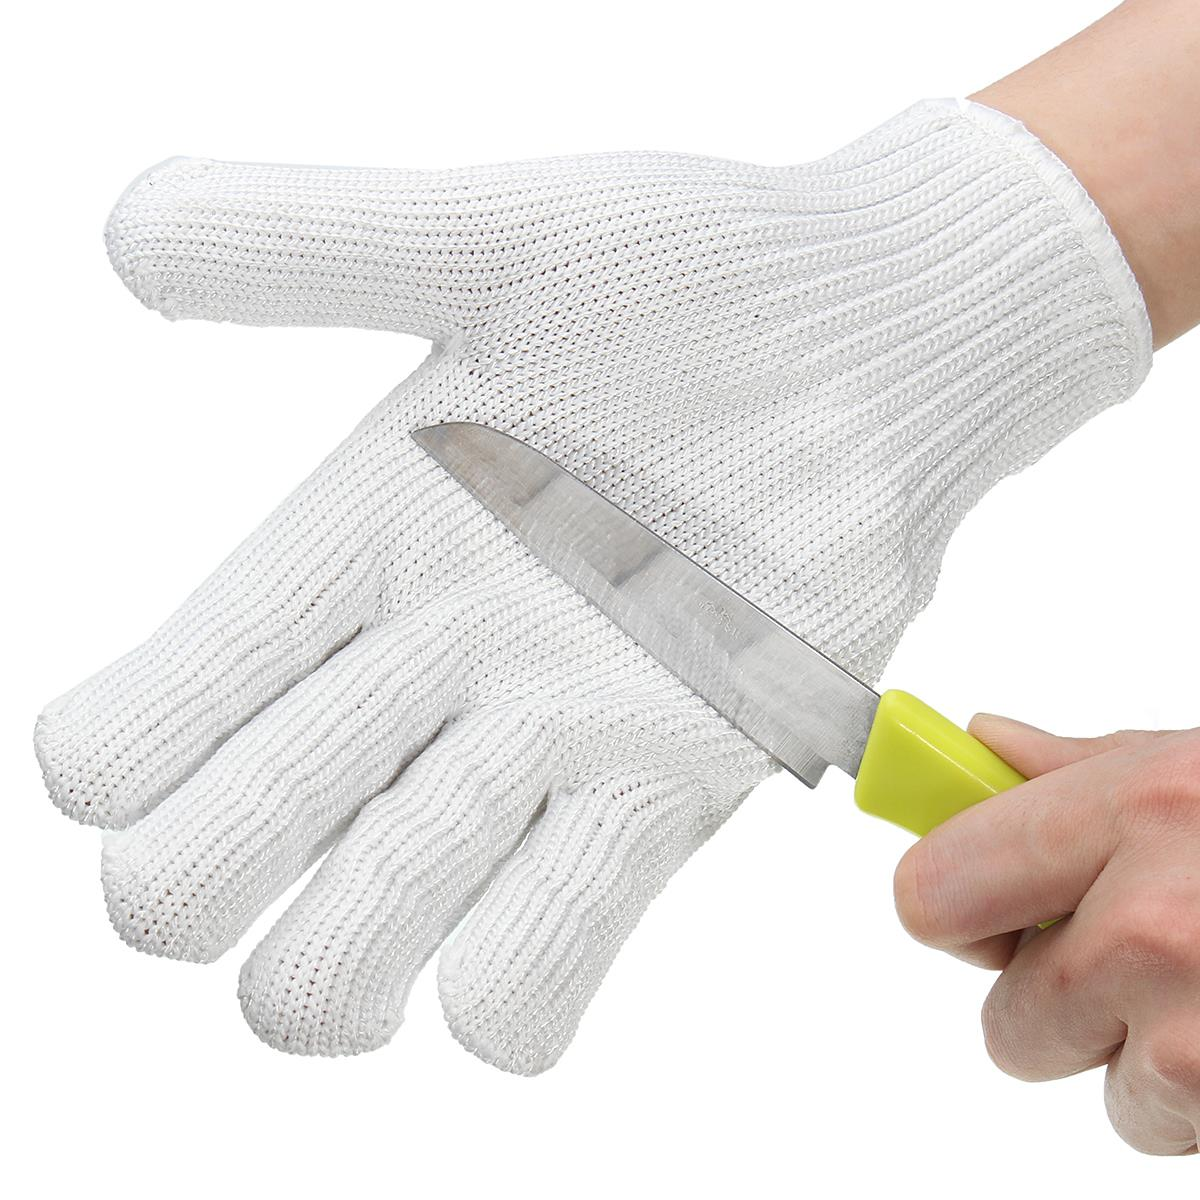 Leather work gloves ireland - Cut Resistant Anti Cutting Gloves Wearable Anti Glass Scratches White Wire Work Gloves Safety